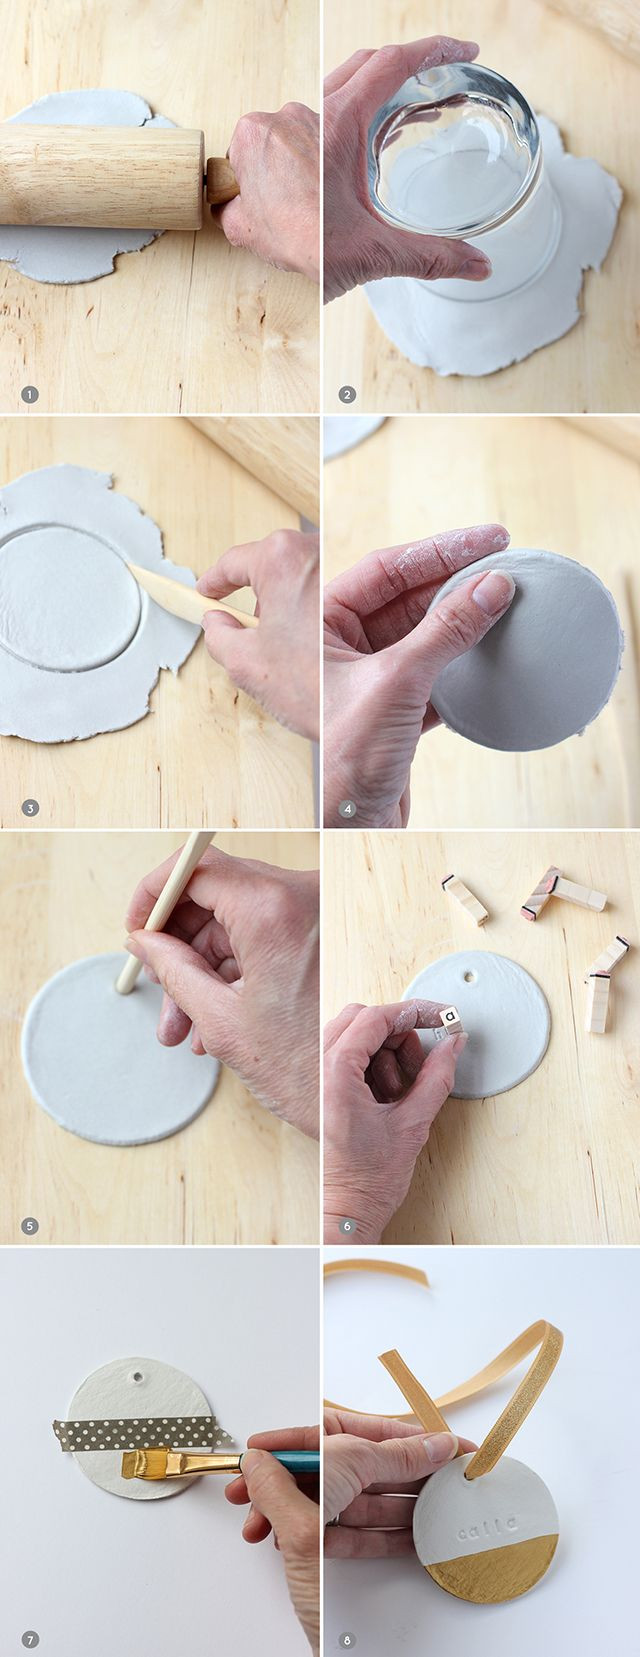 Best ideas about Baby First DIY . Save or Pin Best 25 First christmas ornament ideas on Pinterest Now.